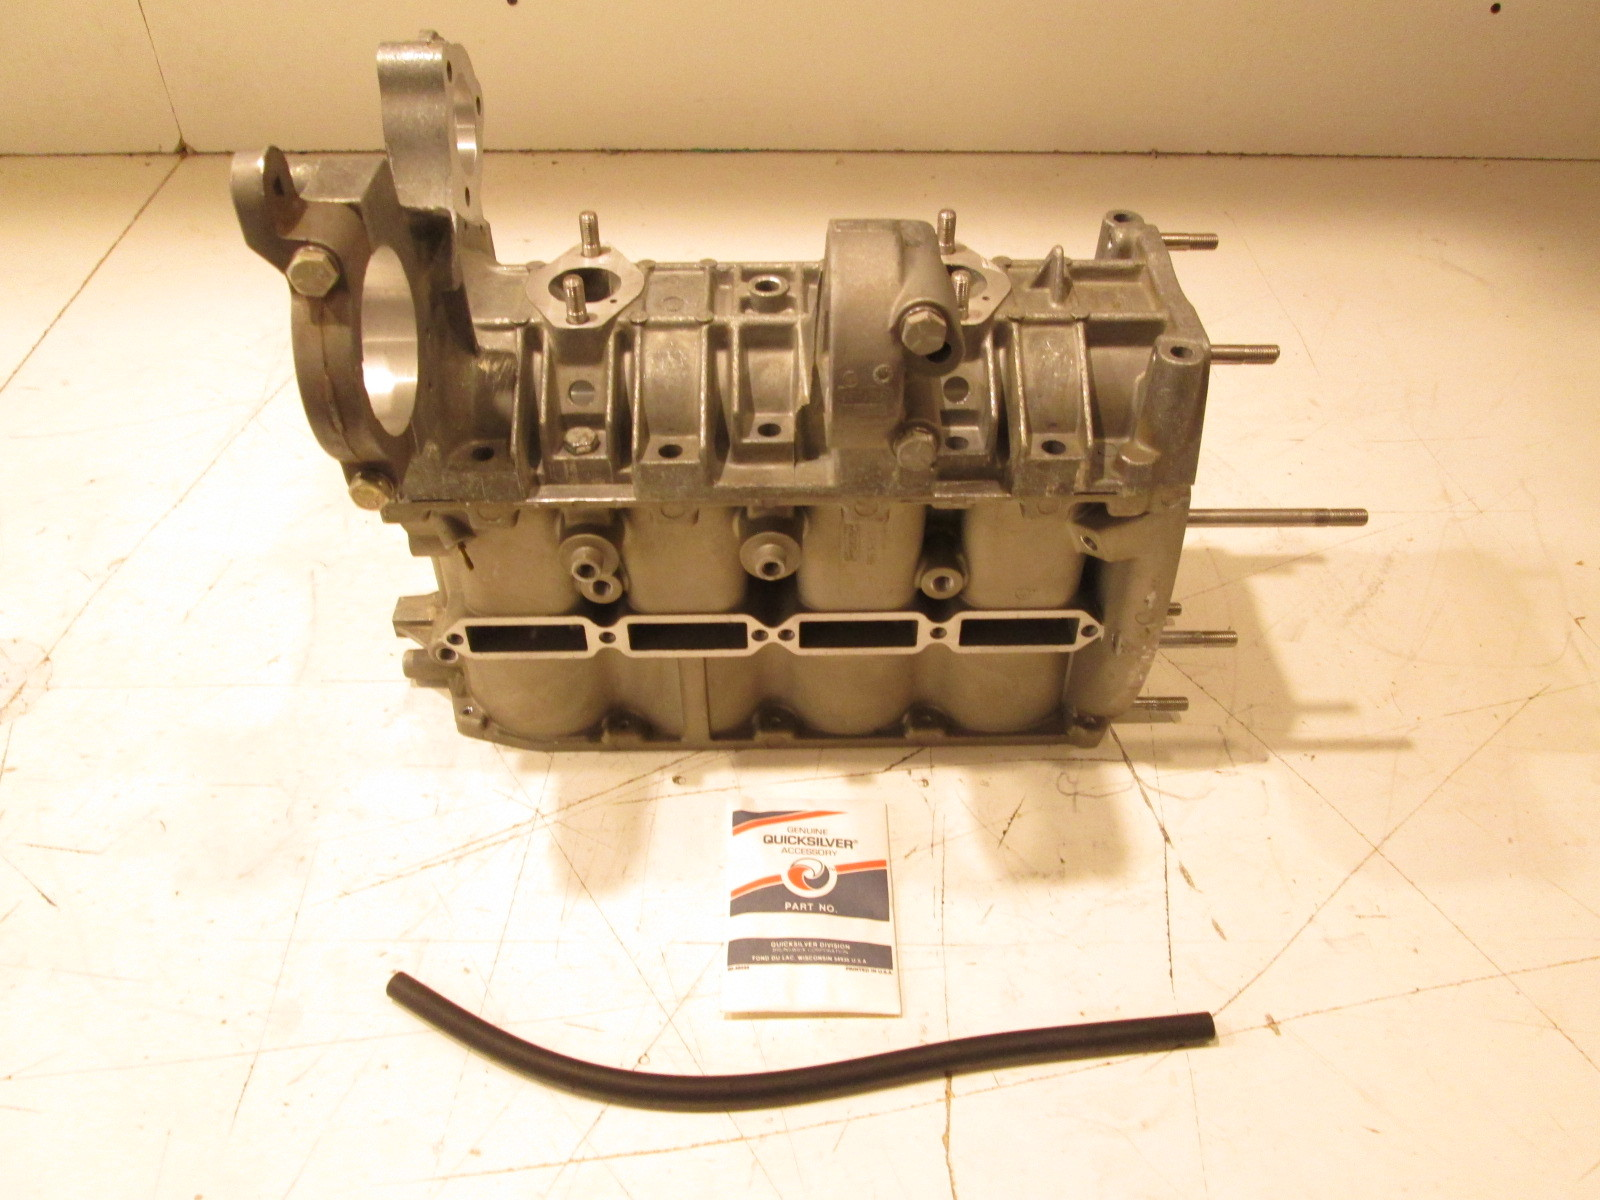 1976 mercury outboard diagram 863-7496a3 1976-79 mercury 500 4cyl. outboard 50hp ... mercury outboard ignition wiring